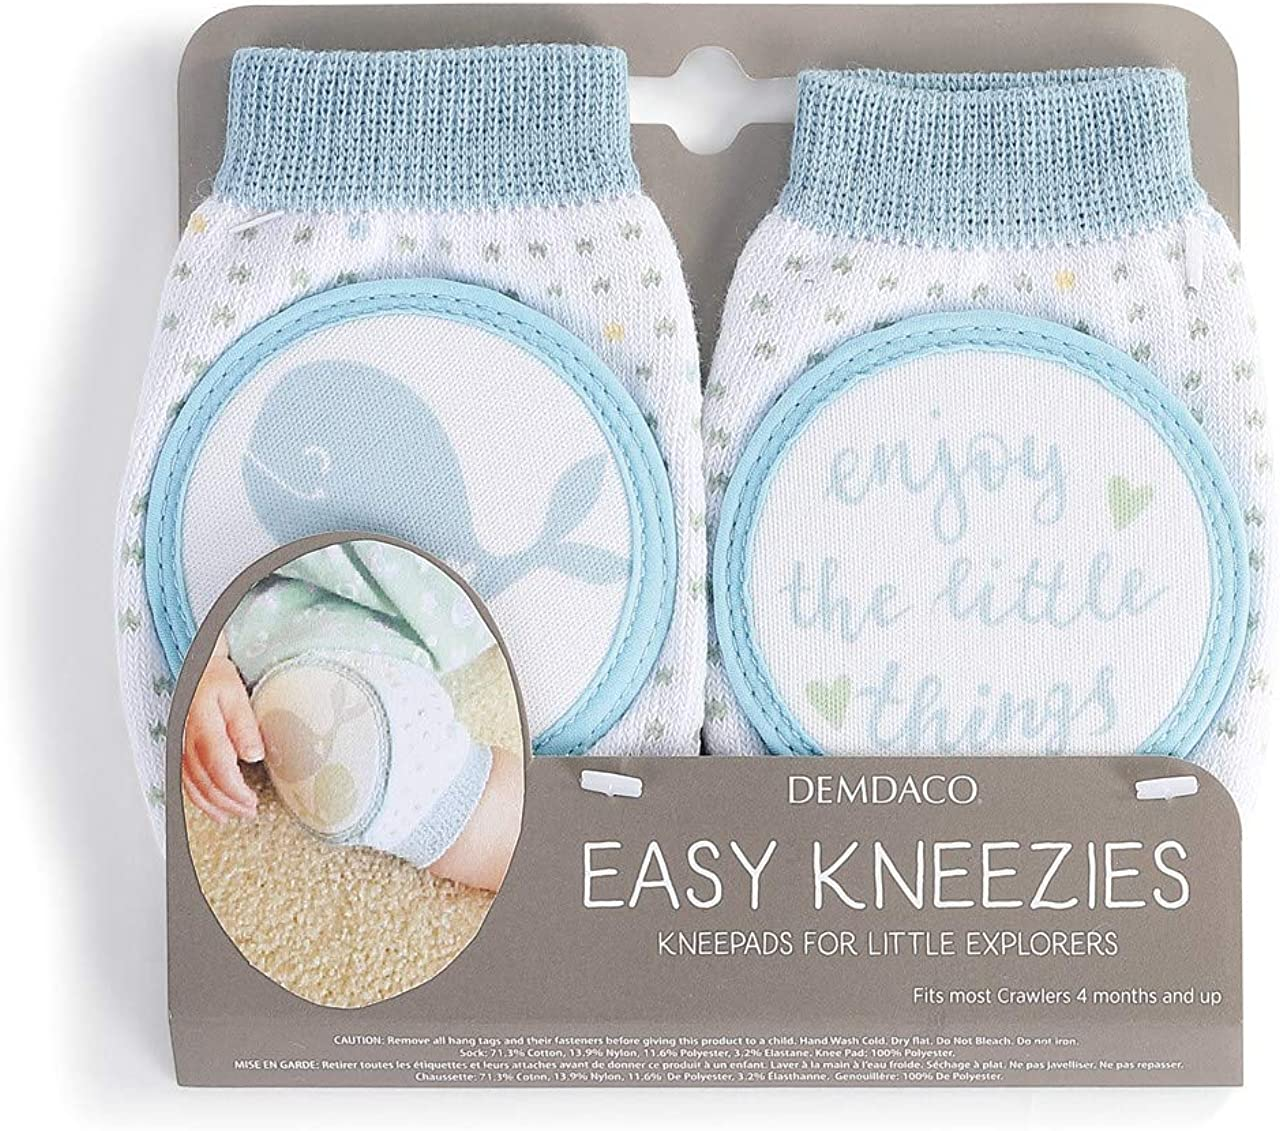 Enjoy The Little Things Whale Soft Blue 5 x 3 Cotton Fabric Kneezie Infant Socks